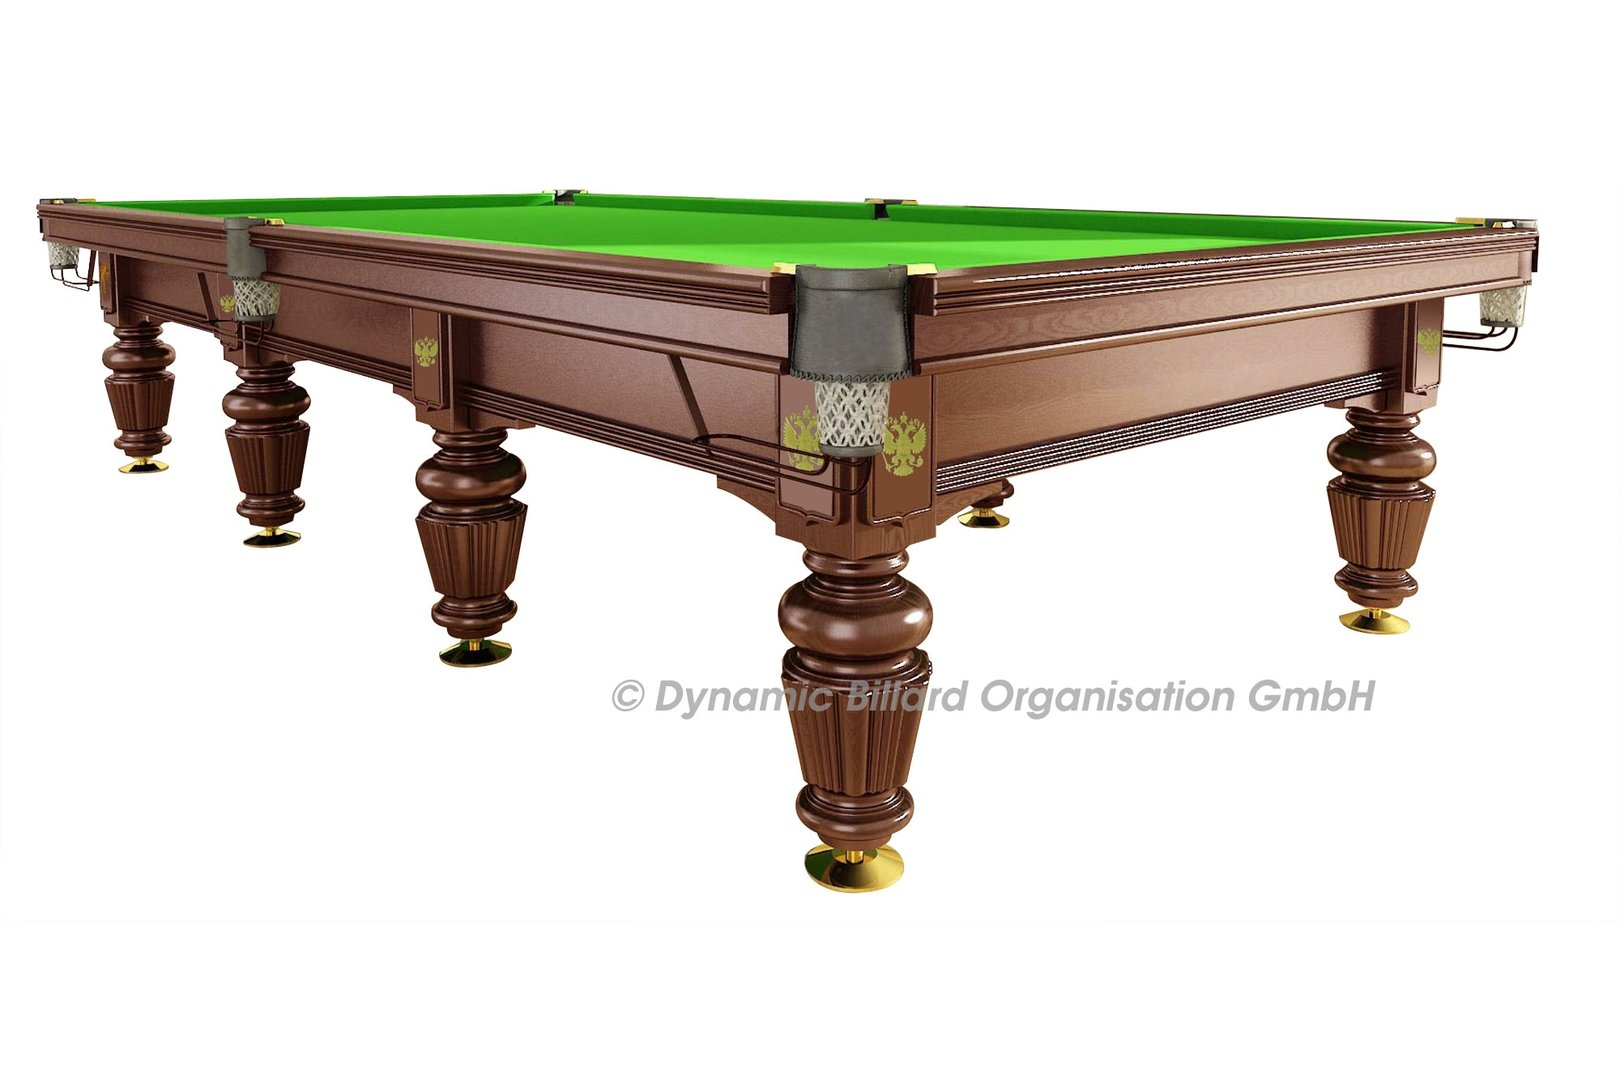 Dynamic noble pyramid table 12 ft suomen biljardikauppa oy for 12 ft table